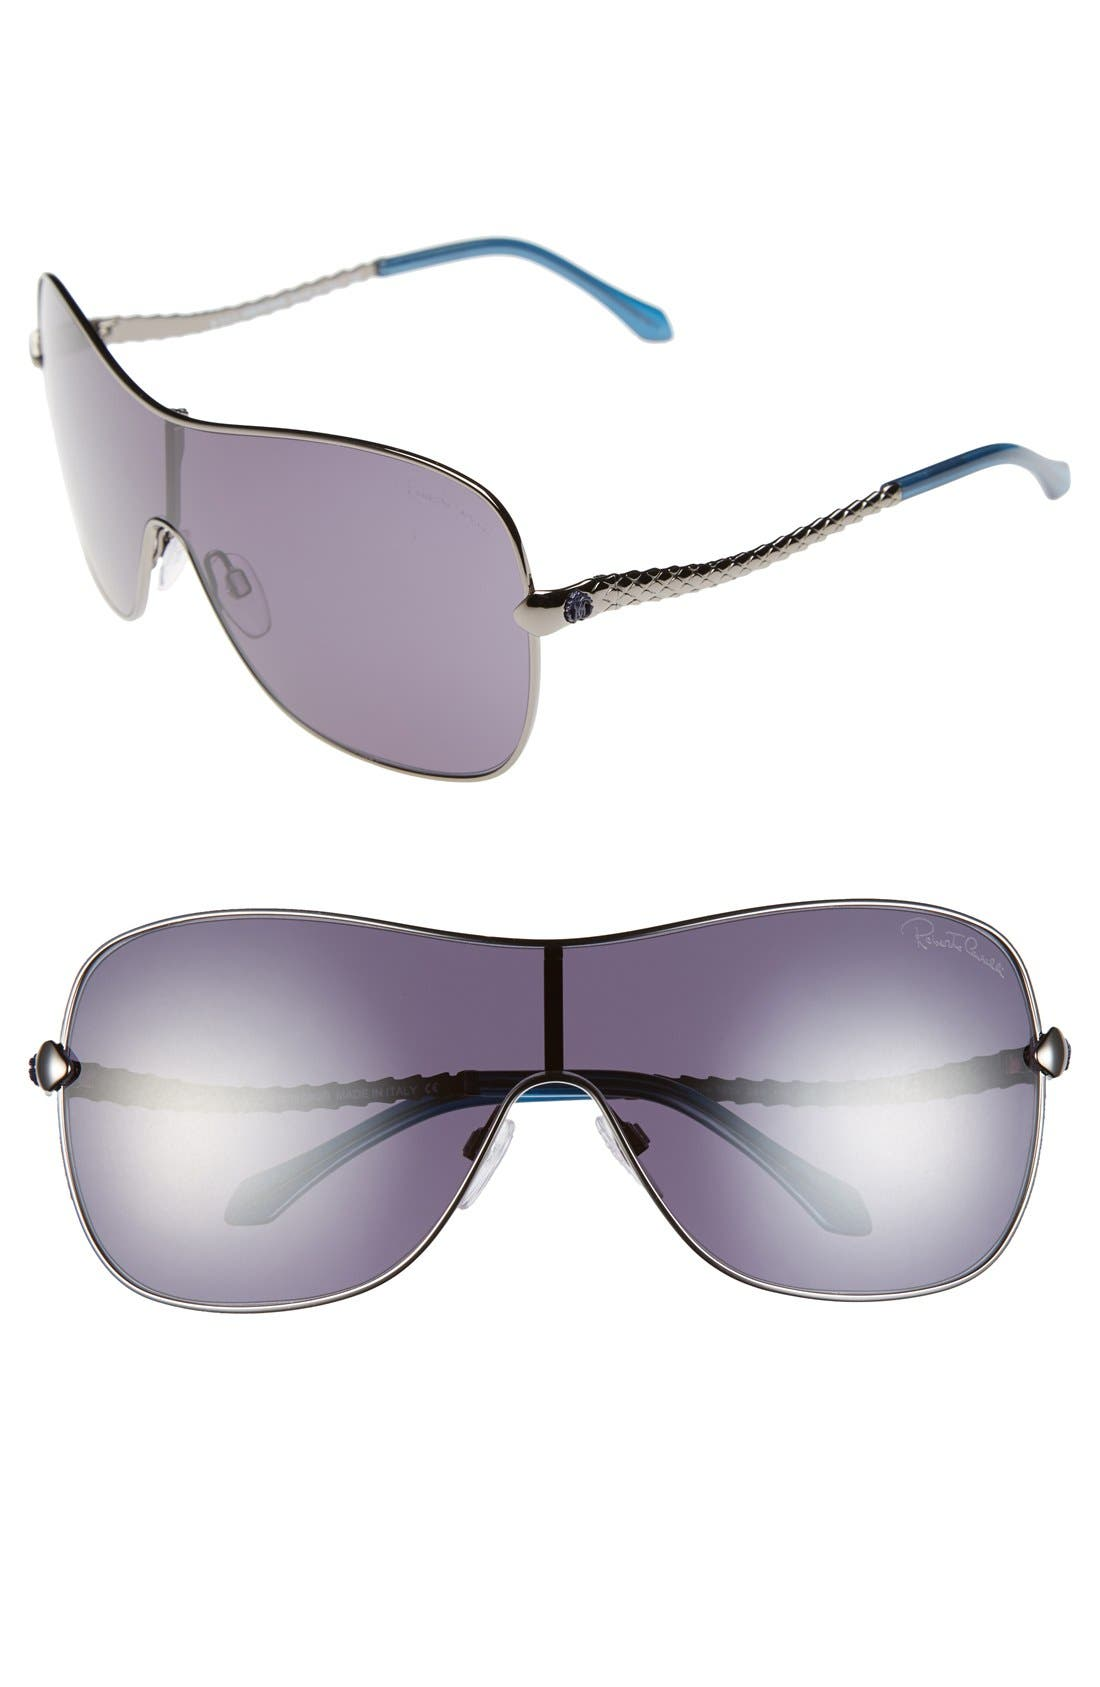 Main Image - Roberto Cavalli 'Agena' Shield Sunglasses